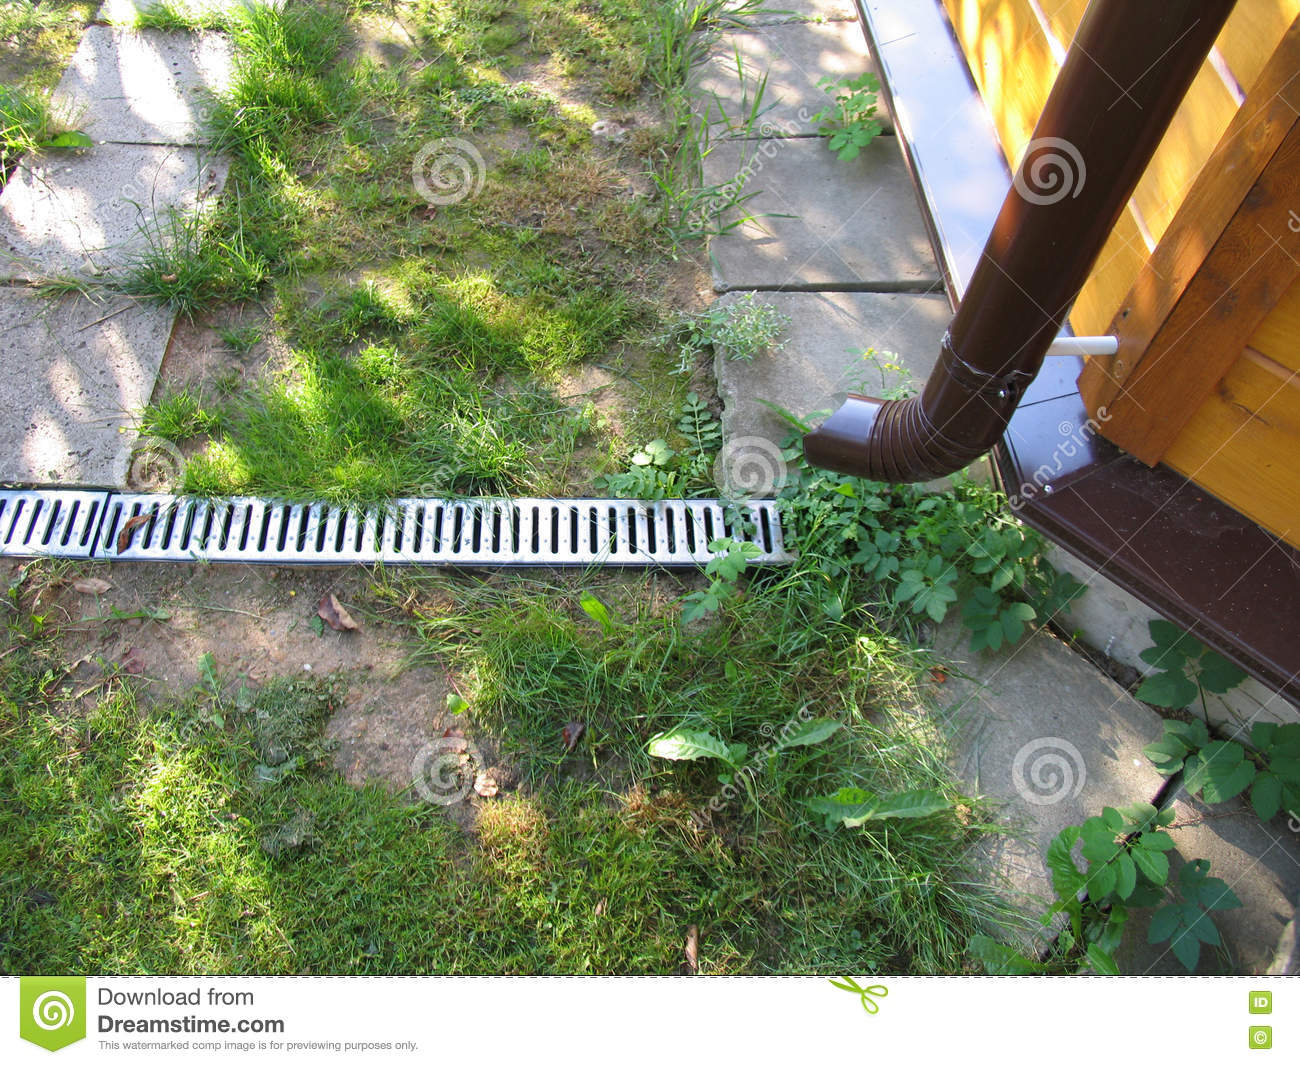 Drain grate in the garden stock image. Image of design ... on decking garden design, art garden design, rainwater garden design, patio garden design, driveway garden design, concrete garden design, water garden design, roof garden design,